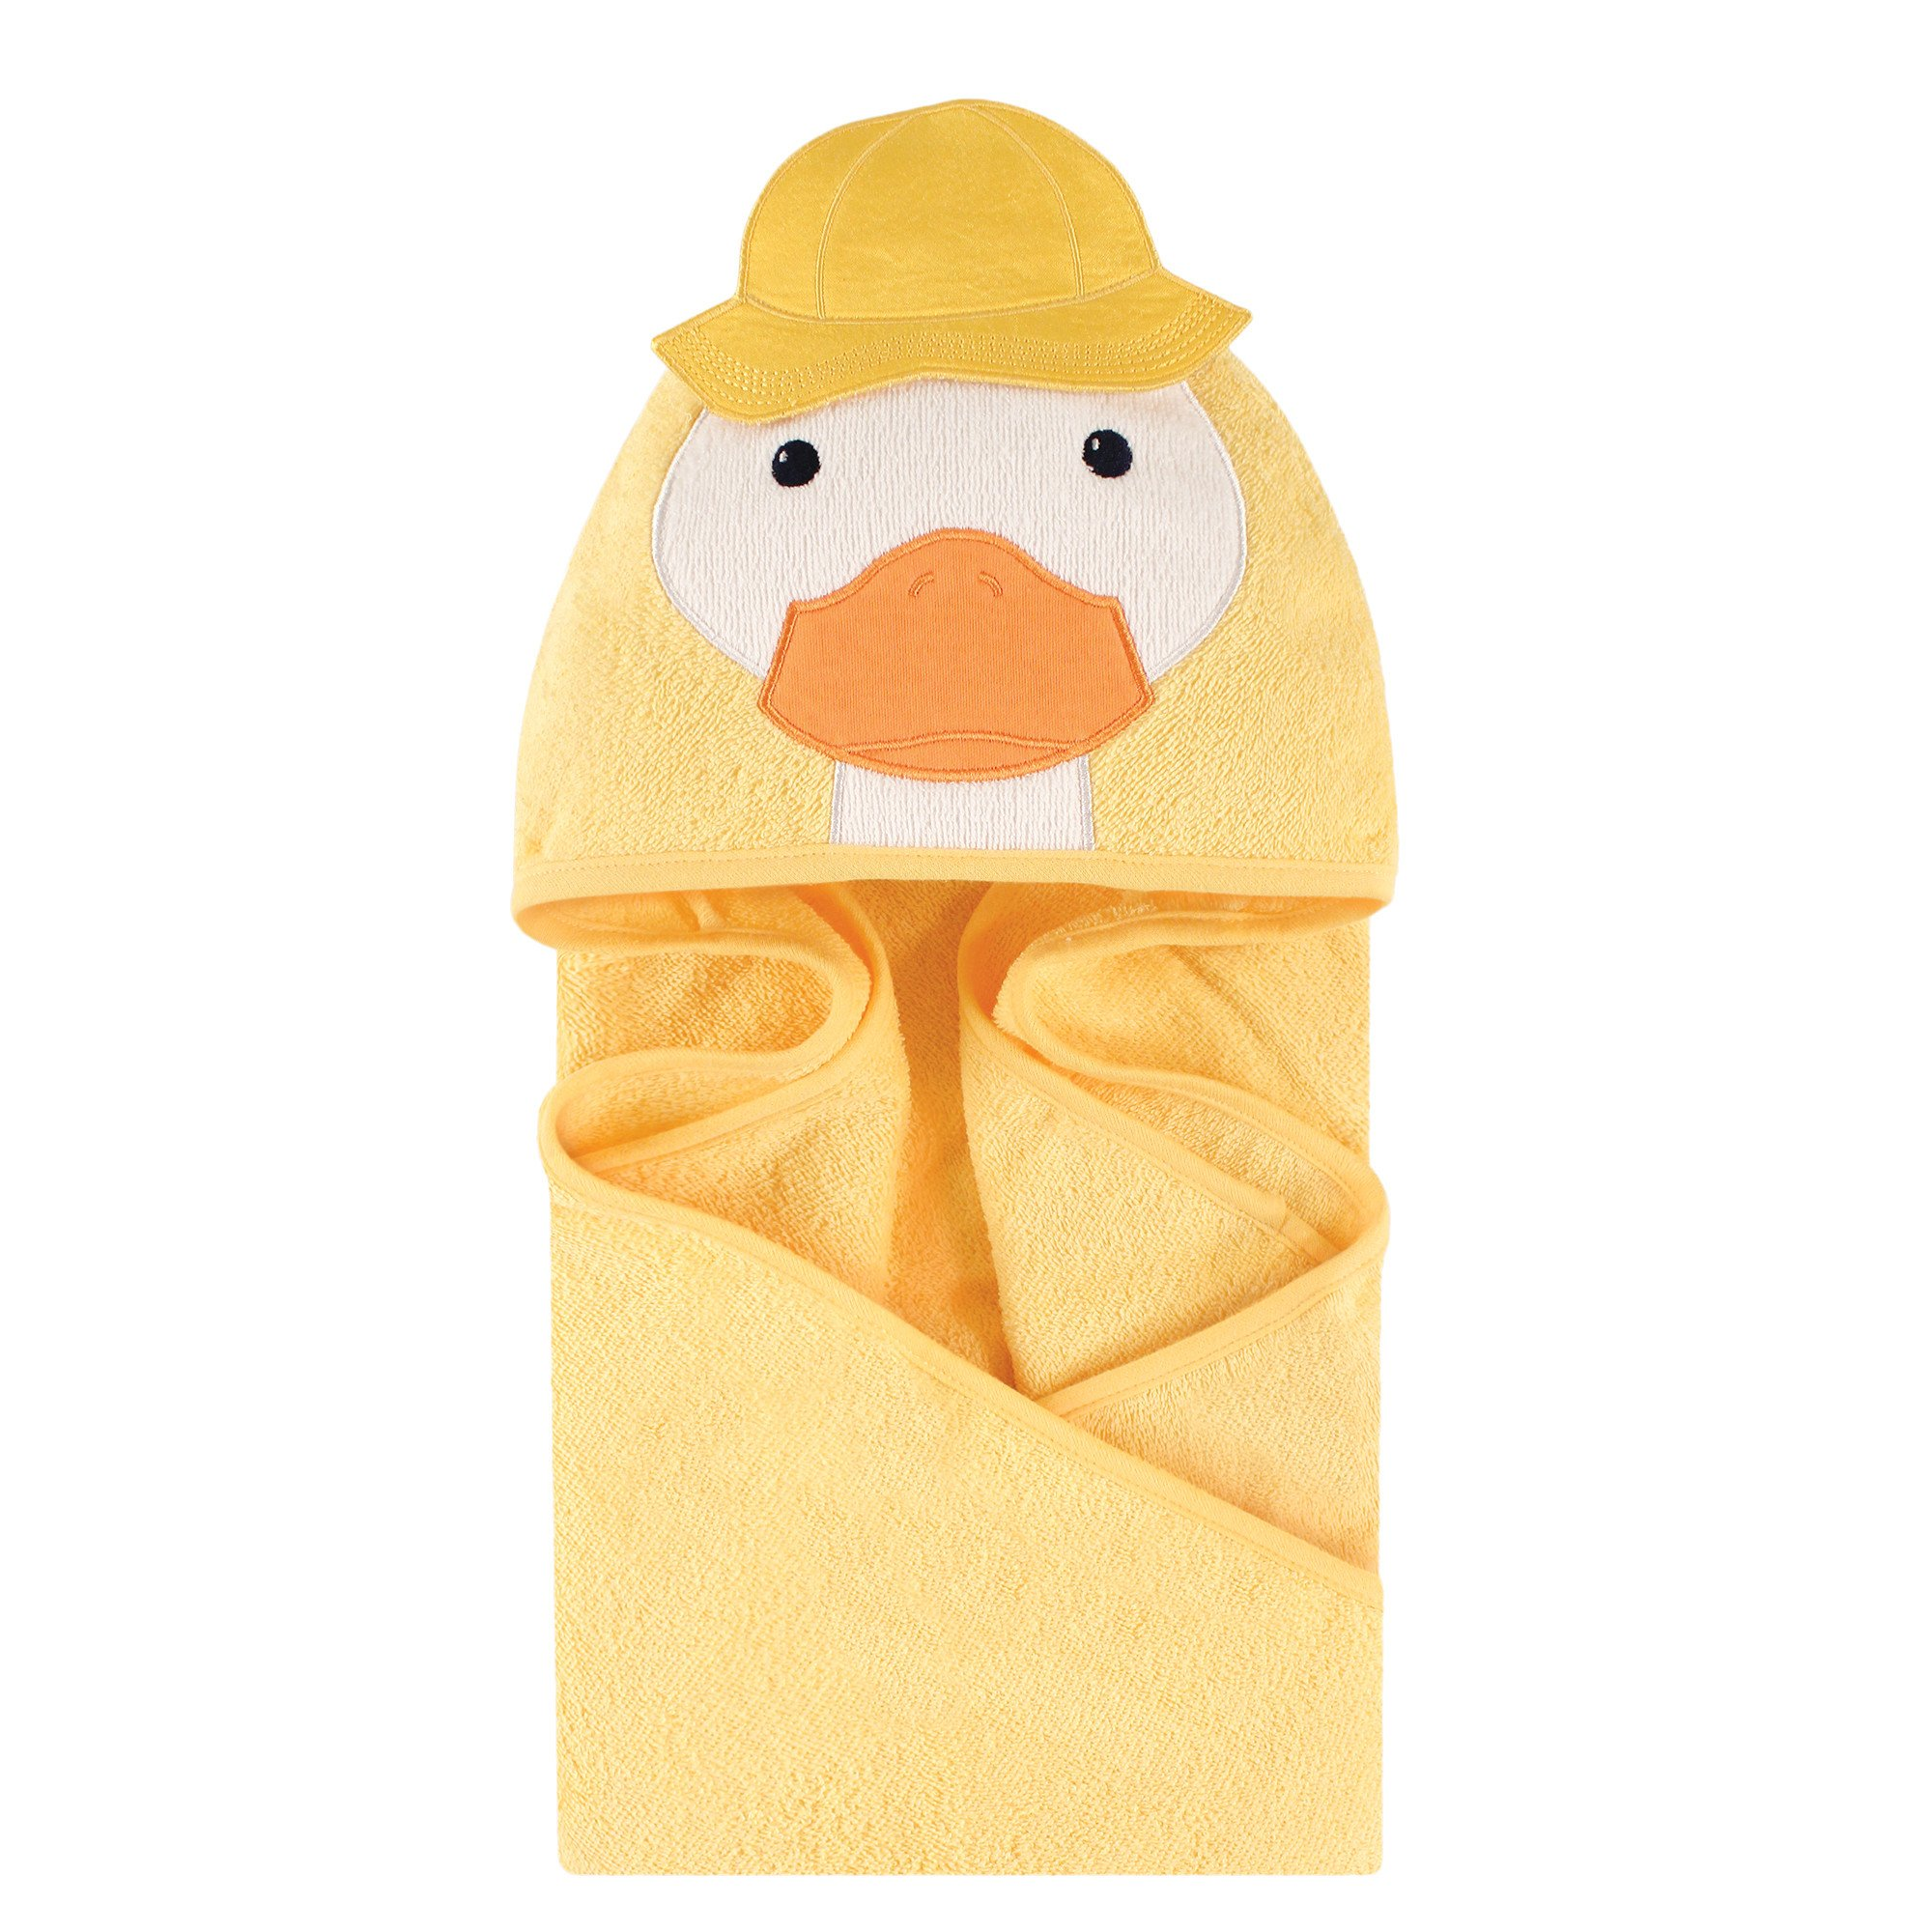 Little Treasure Unisex Baby Cotton Animal Face Hooded Towel, Duck, One Size